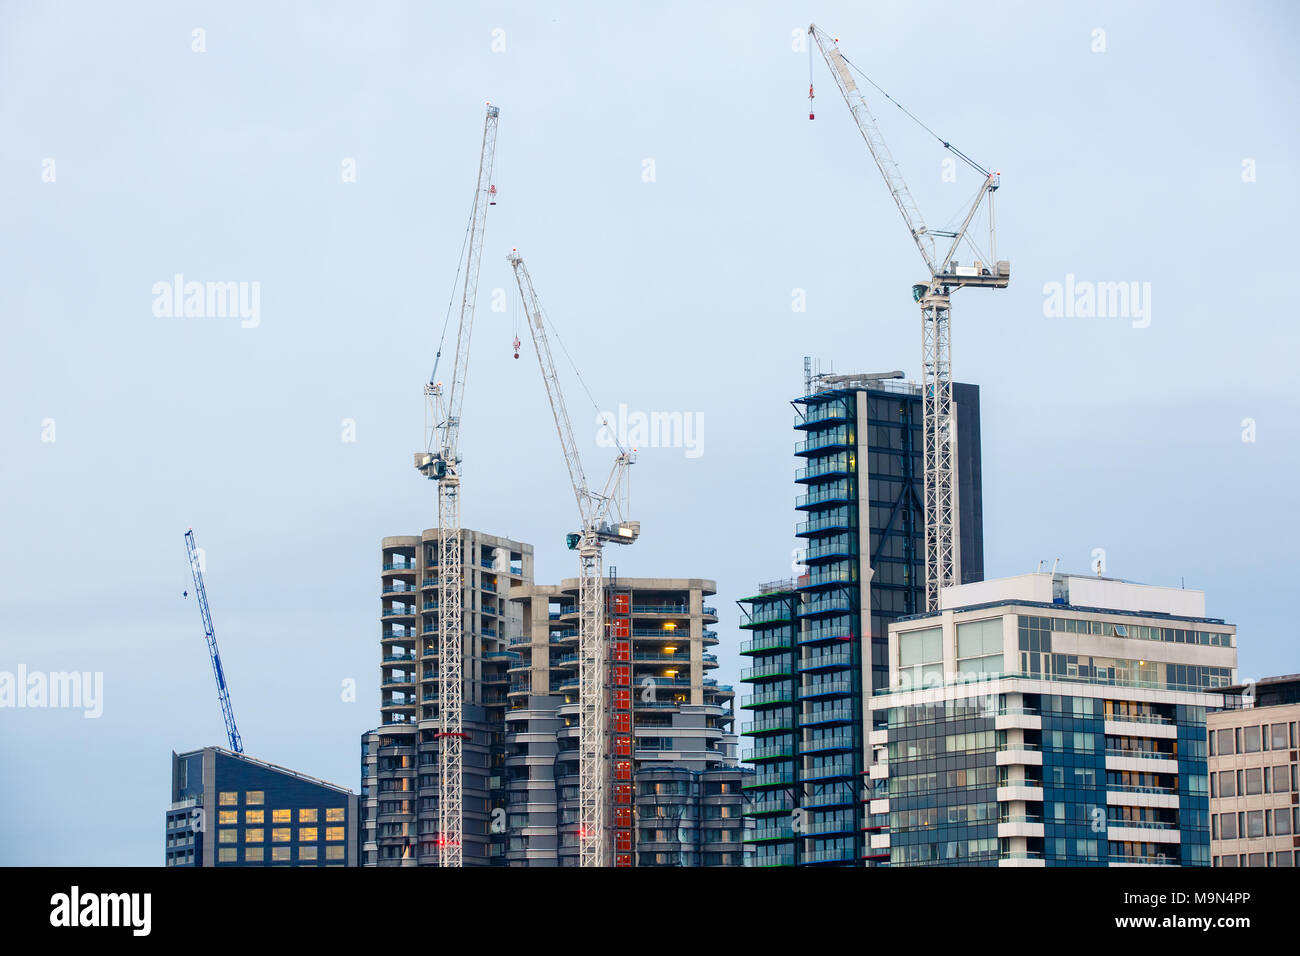 New skyscrapers under construction with tall cranes. Construction business and industry, urbanisation, urban sprawl real estate bubble concept, backgr - Stock Image